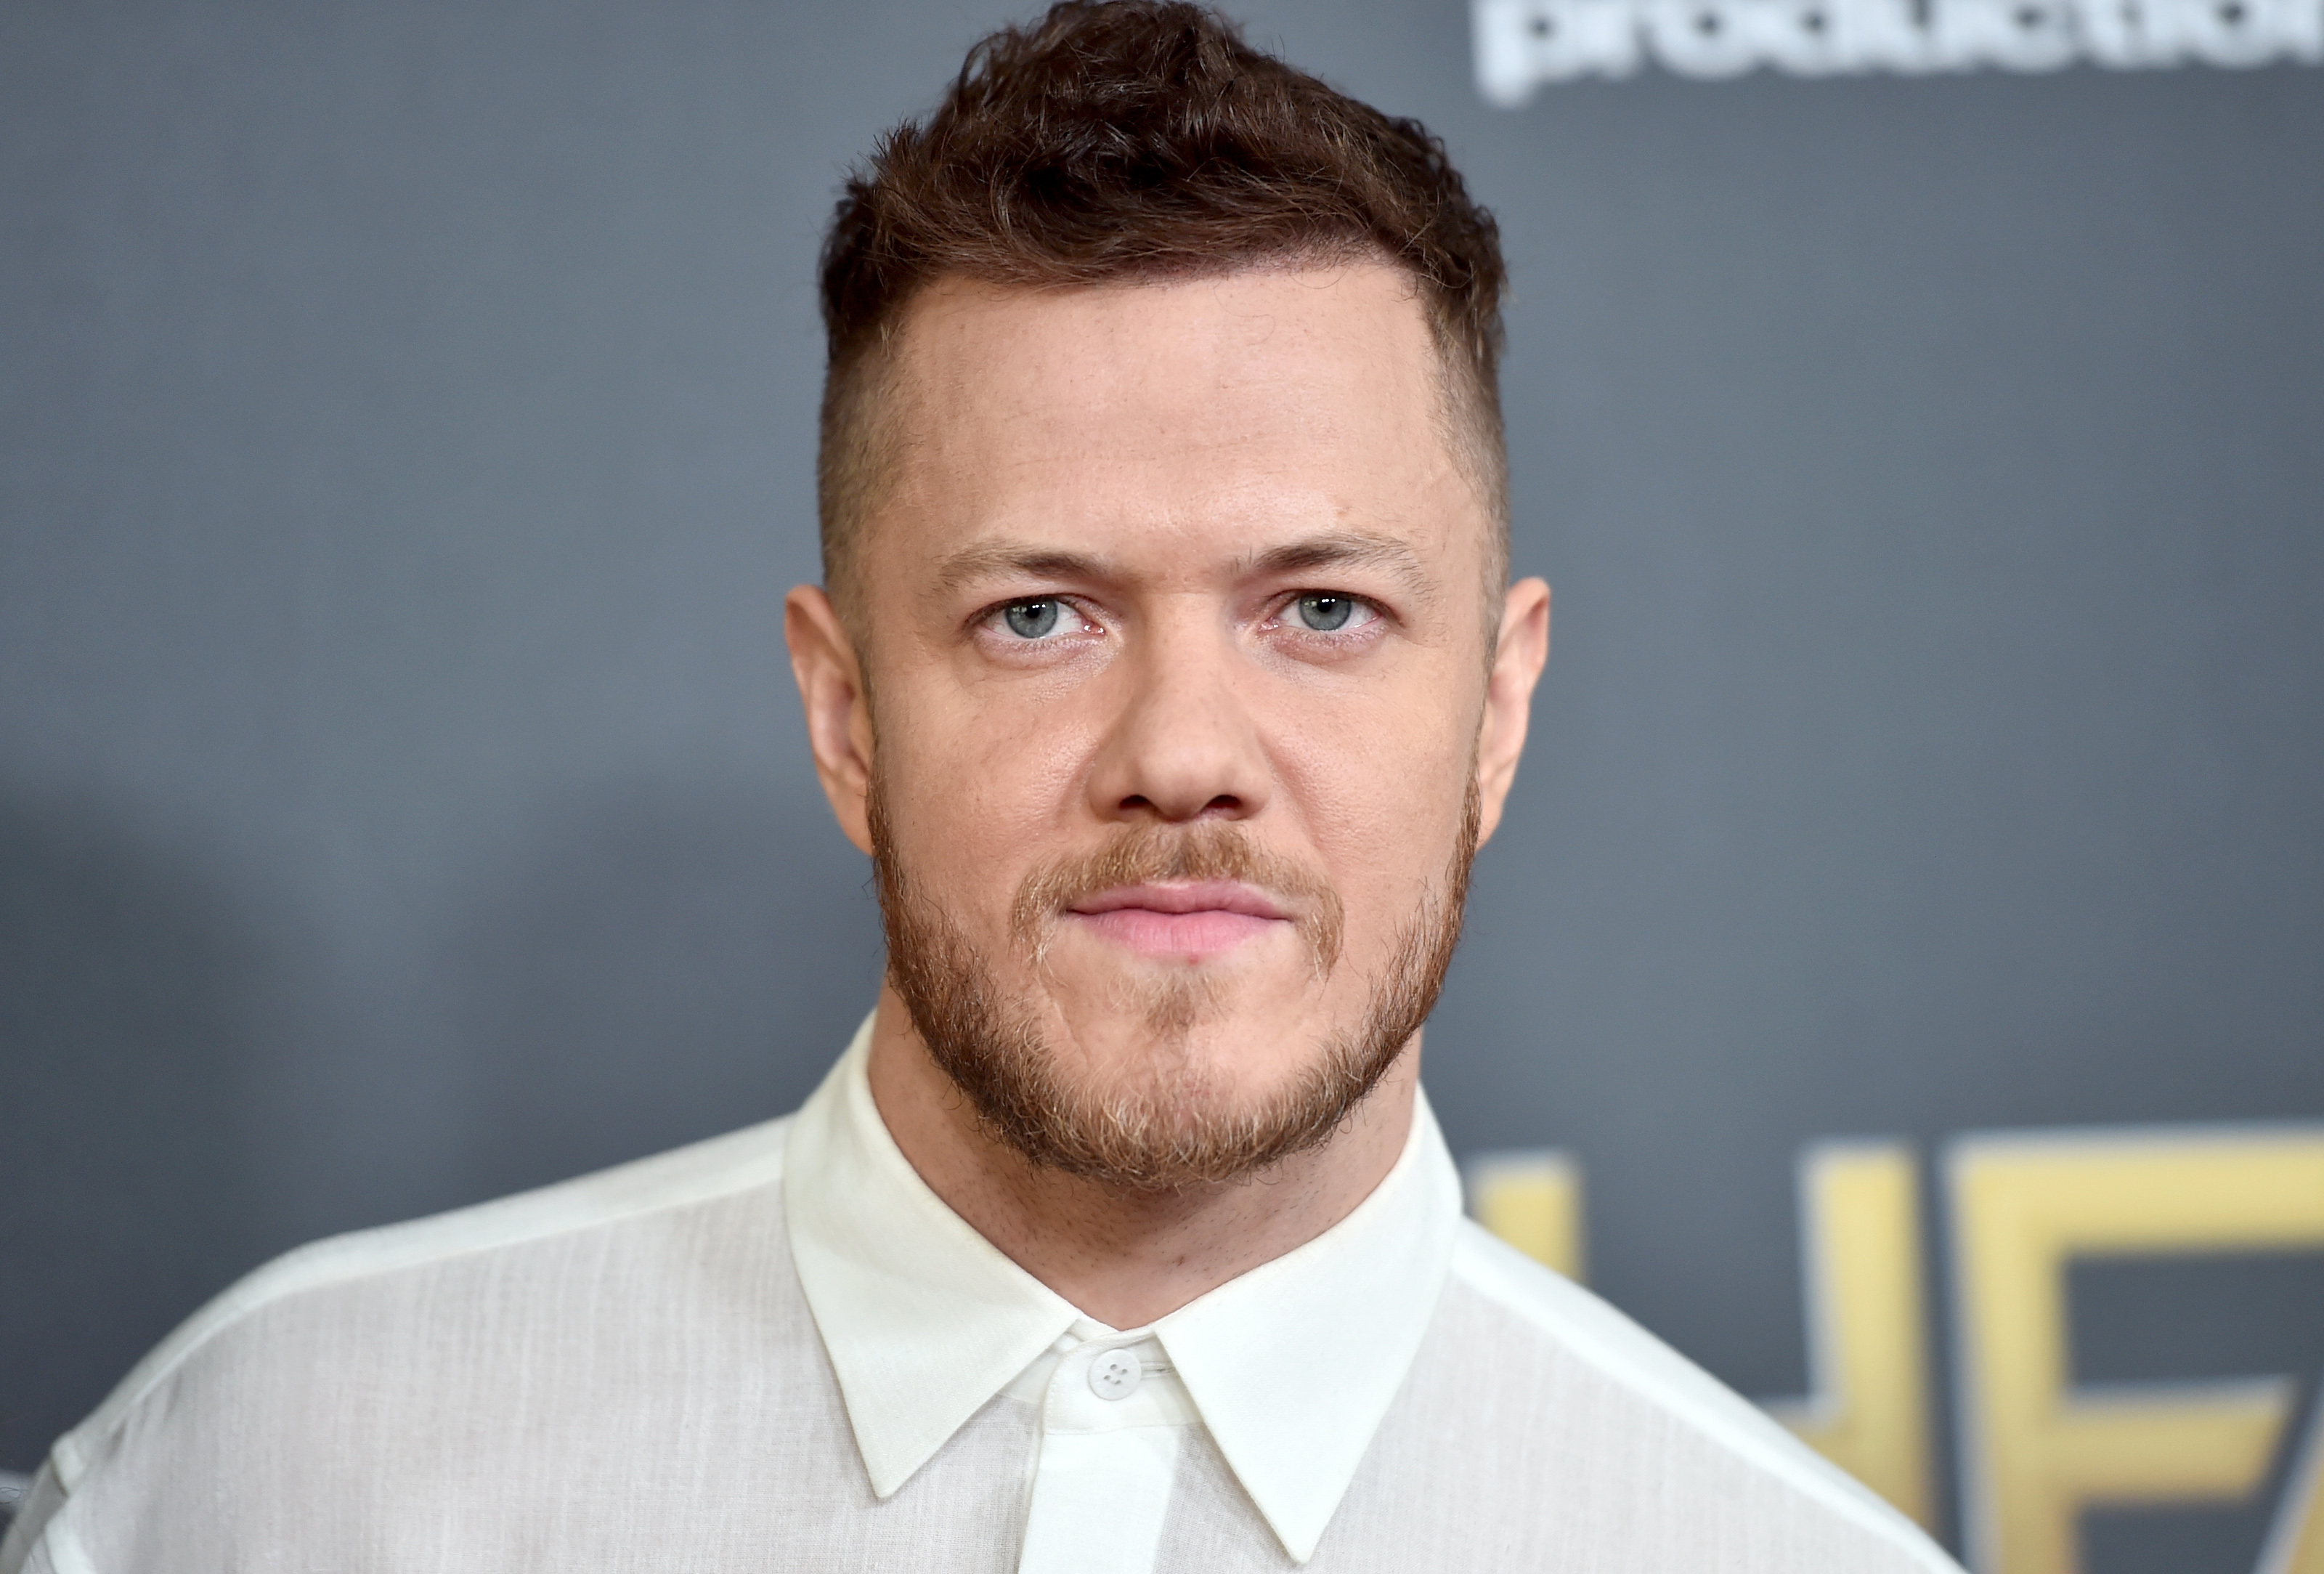 Dan Reynolds of Imagine Dragons attends the 22nd Annual Hollywood Film Awards at The Beverly Hilton Hotel on November 4, 2018 in Beverly Hills, California.